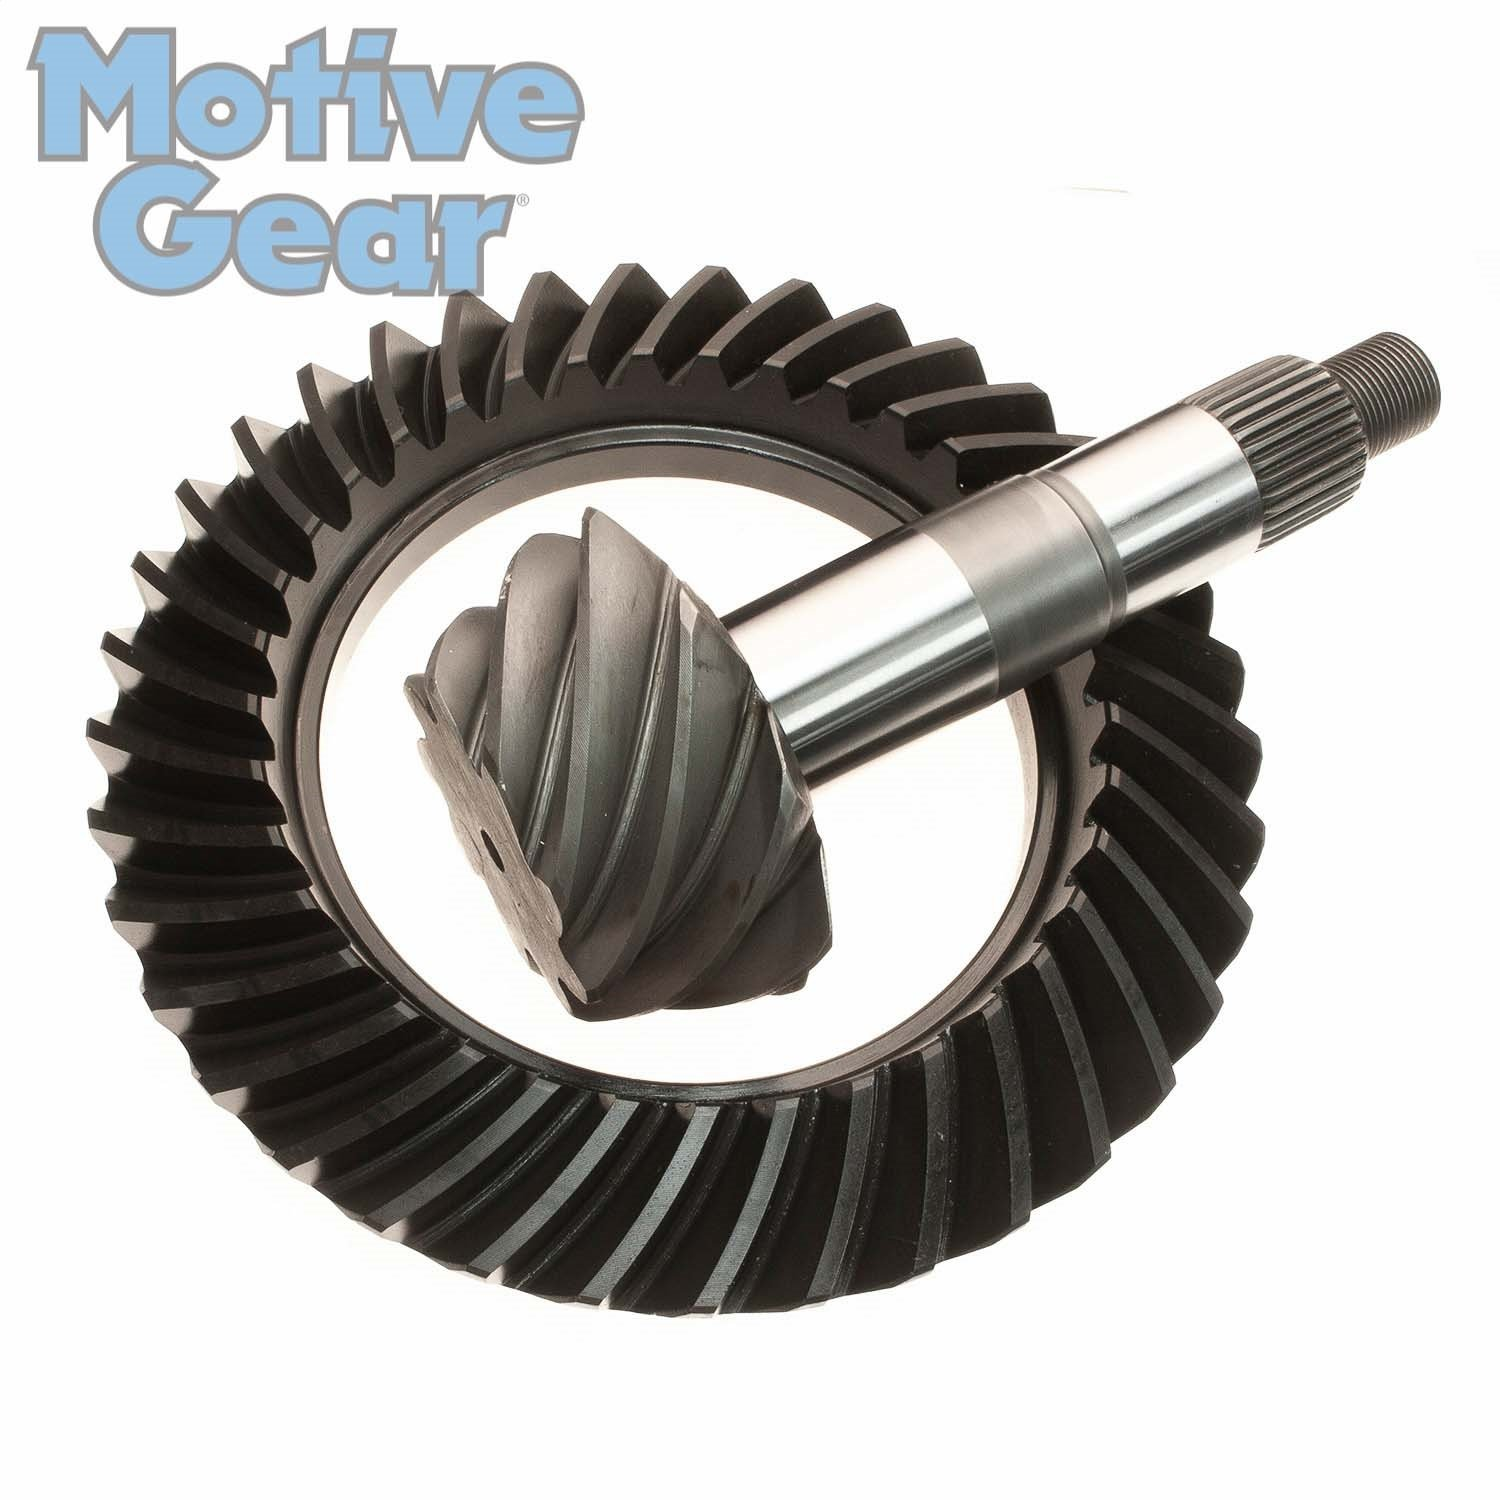 Motive Gear GM12-373X Ring and Pinion GM 8.875 Style, 3.73 Ratio, Truck, Thick